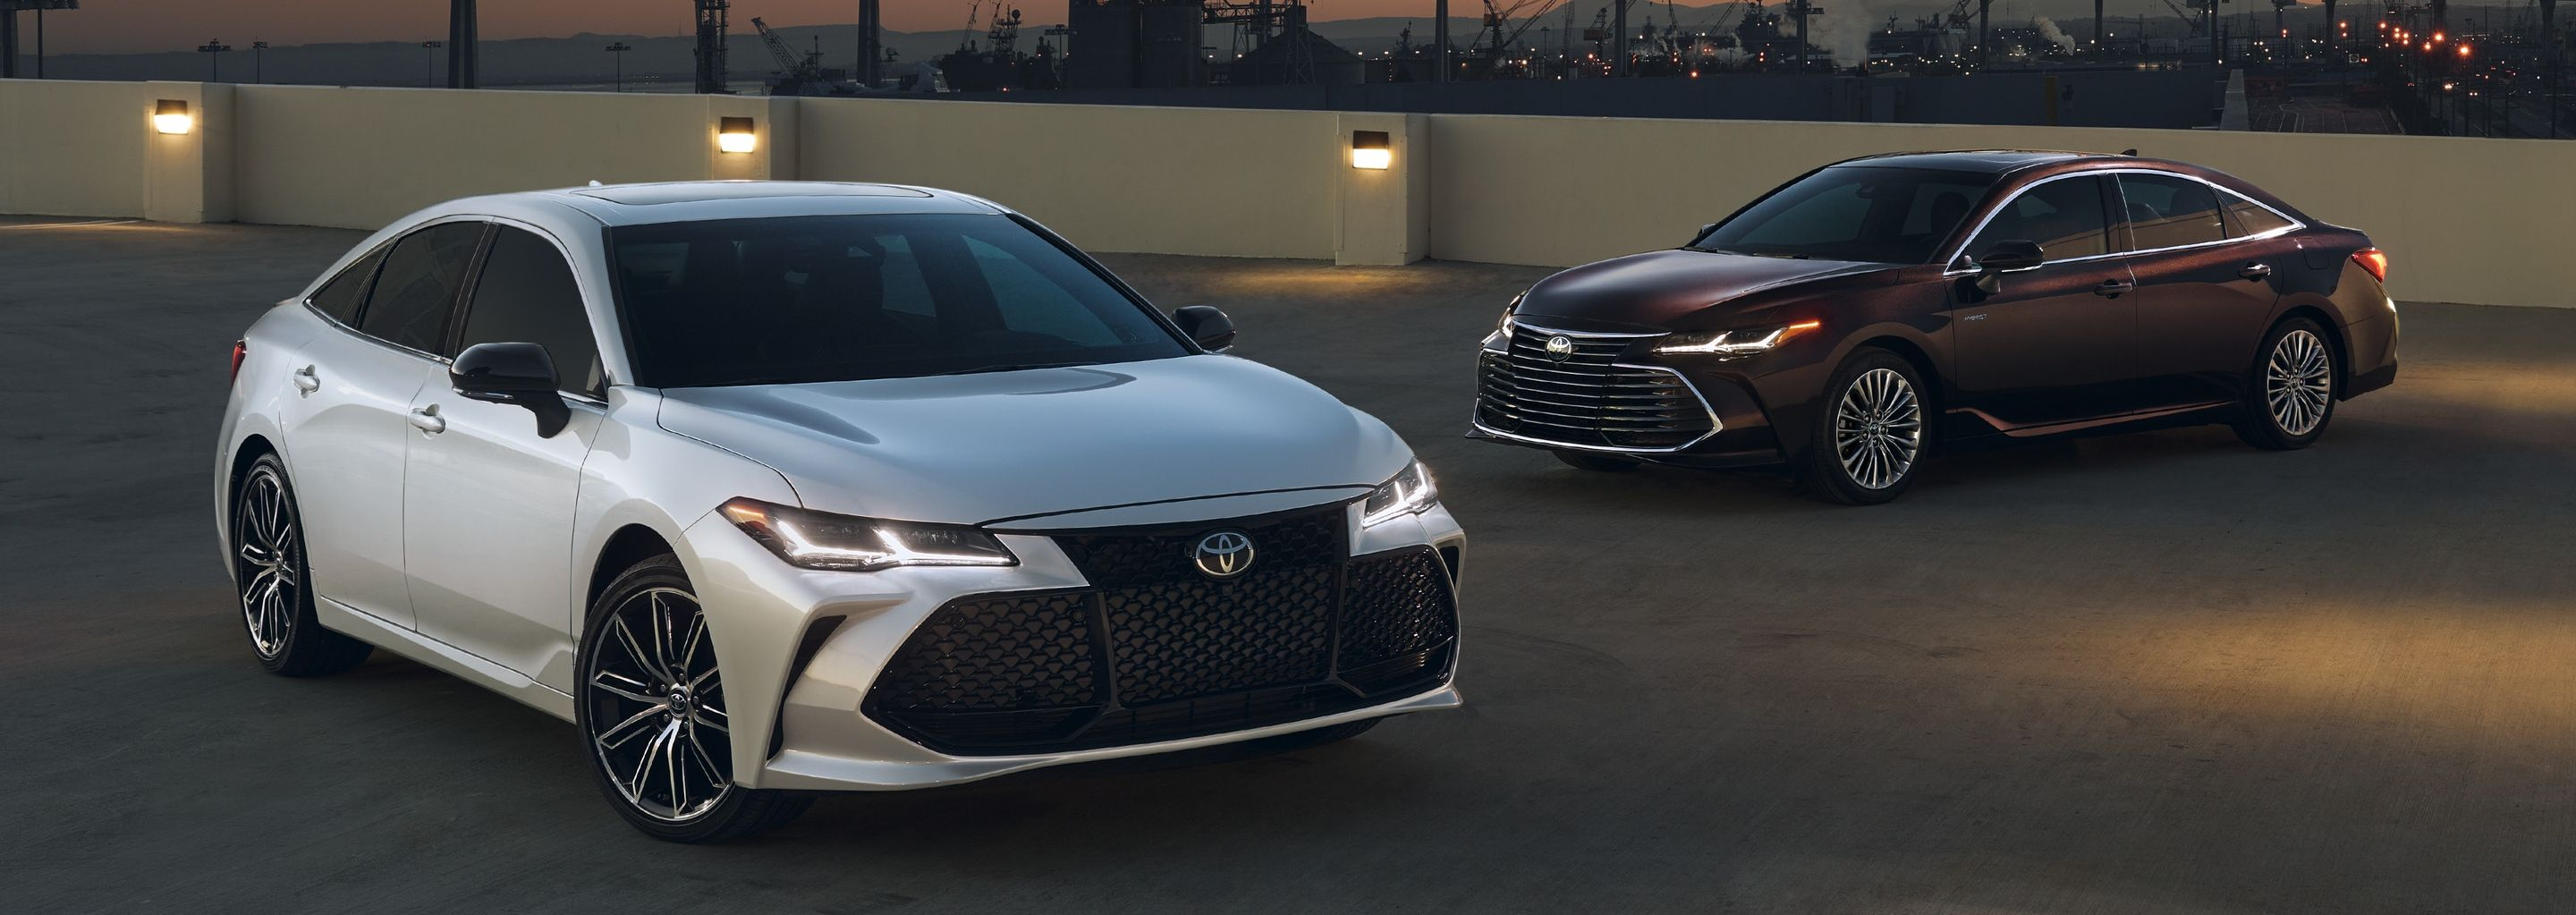 2019 Toyota Avalon Leasing near Elmhurst, IL